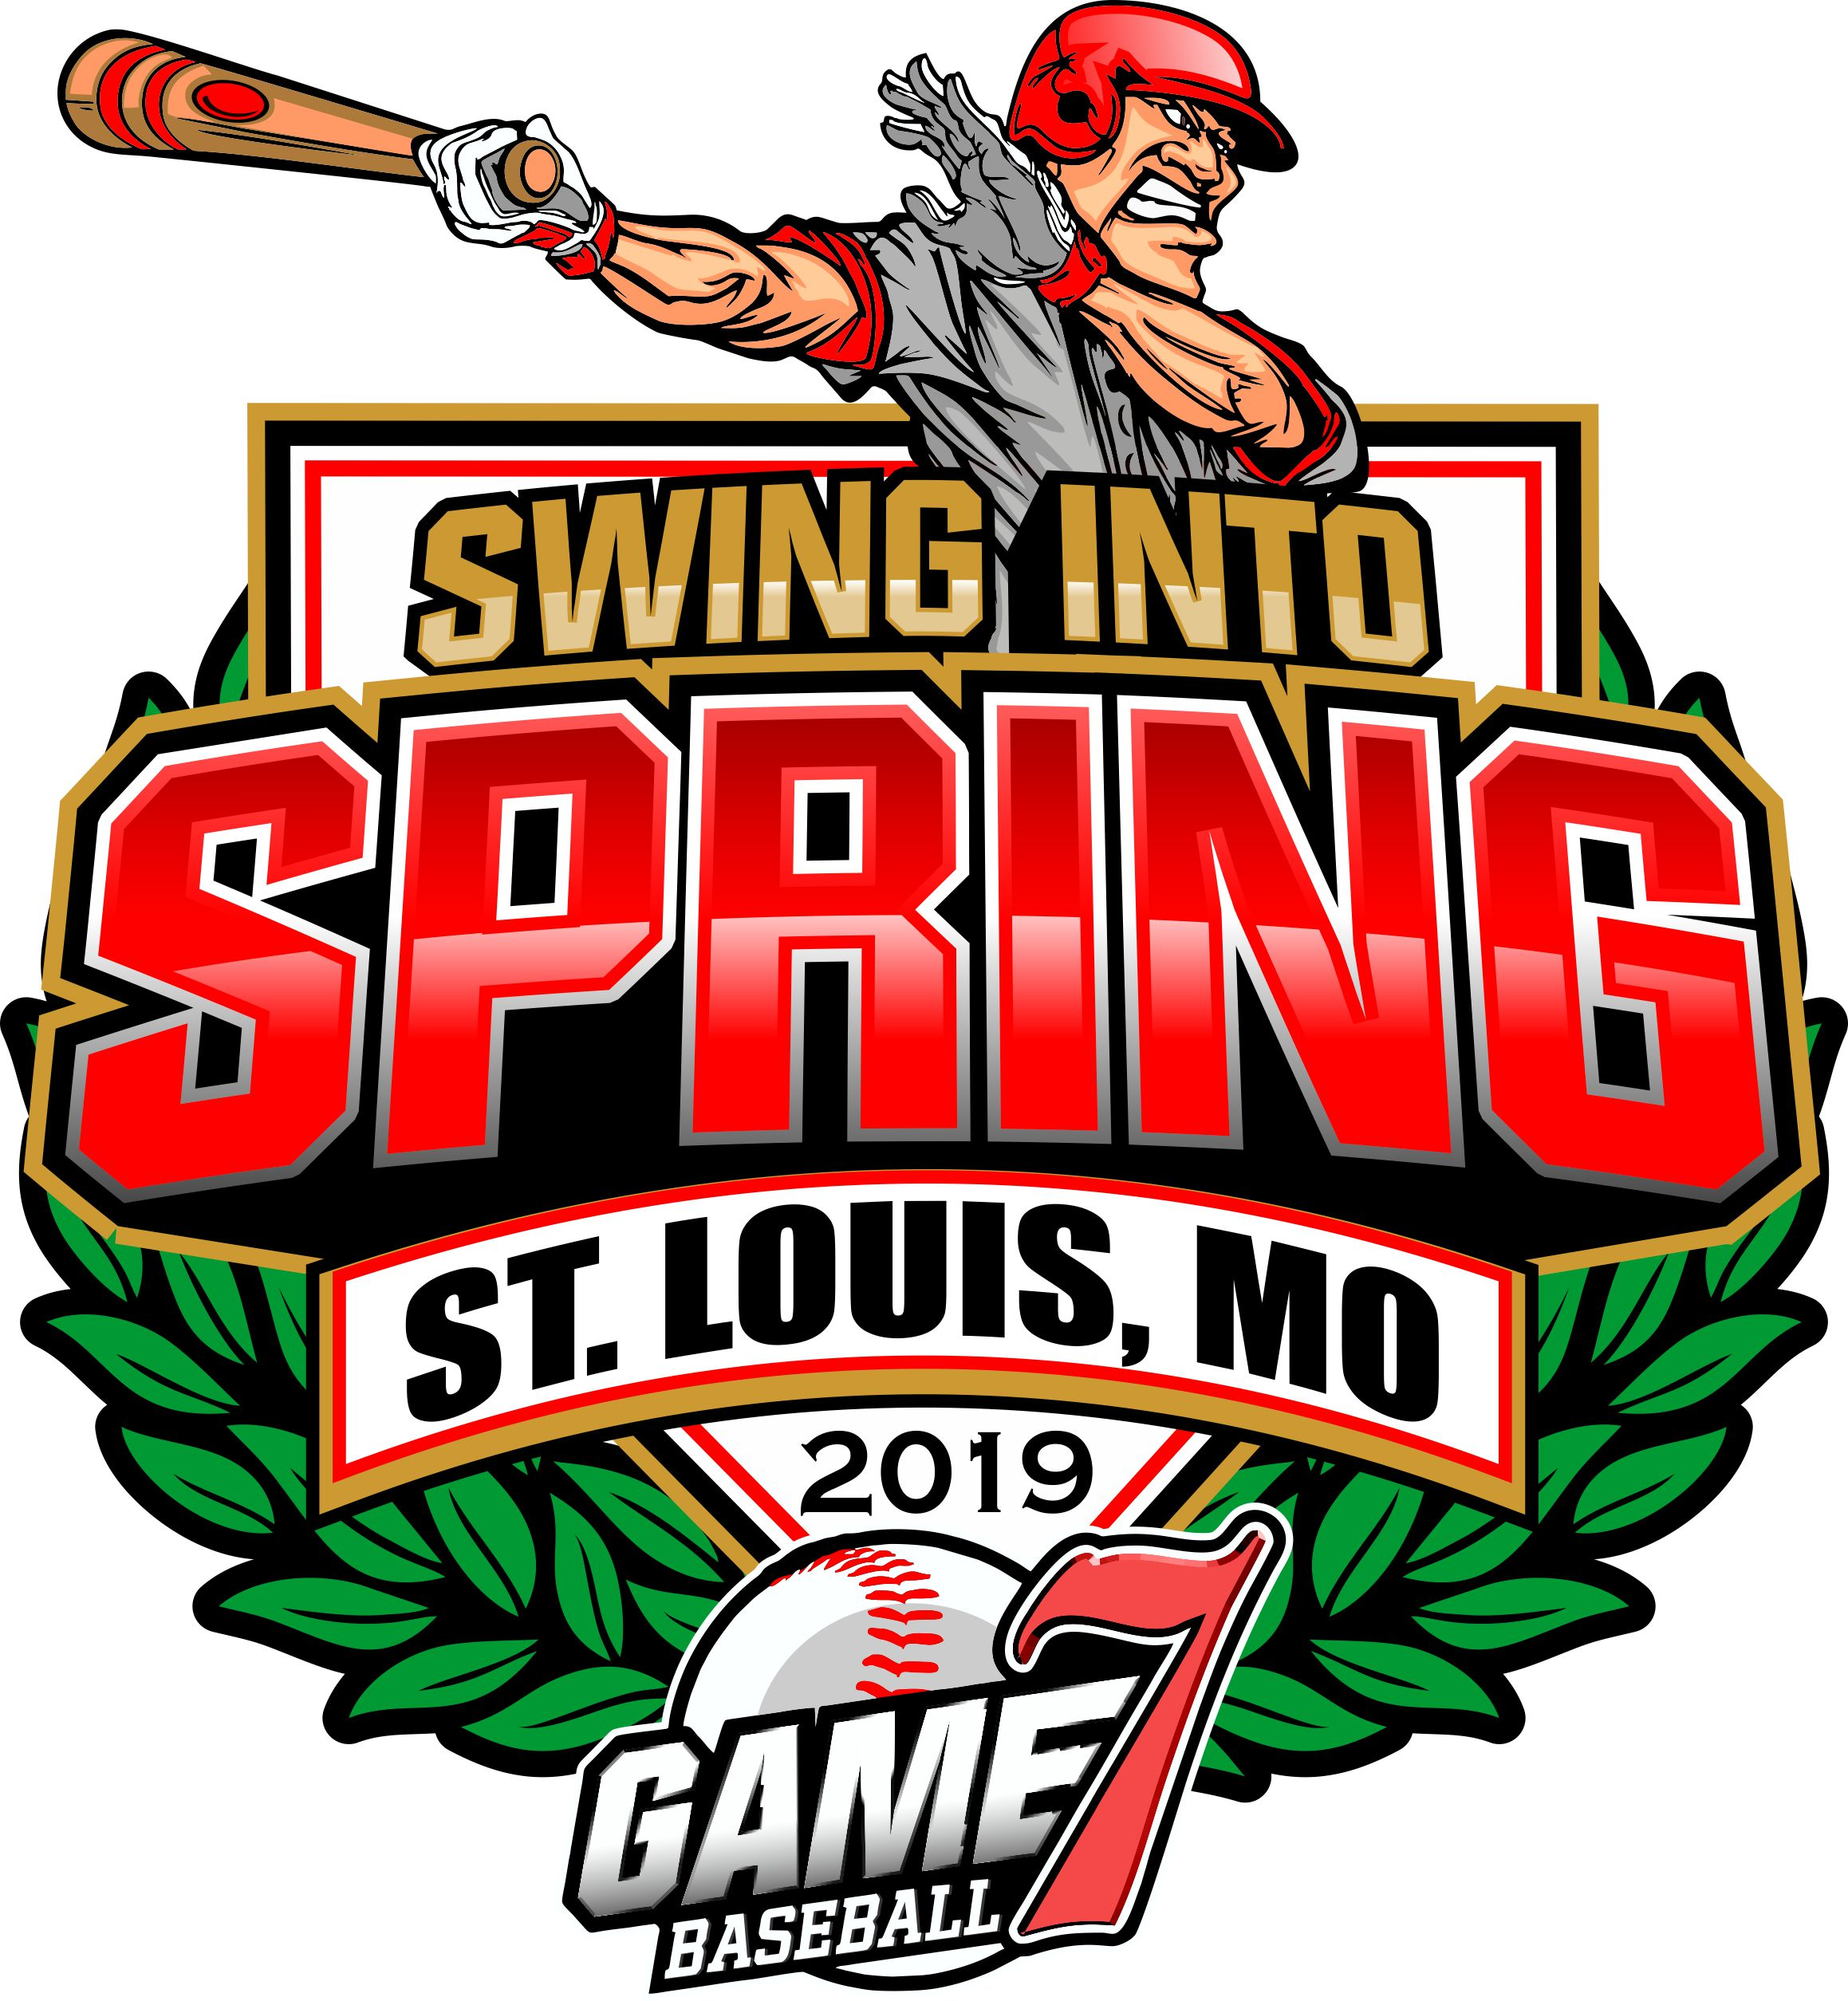 Swing into Spring - St. Peters Logo